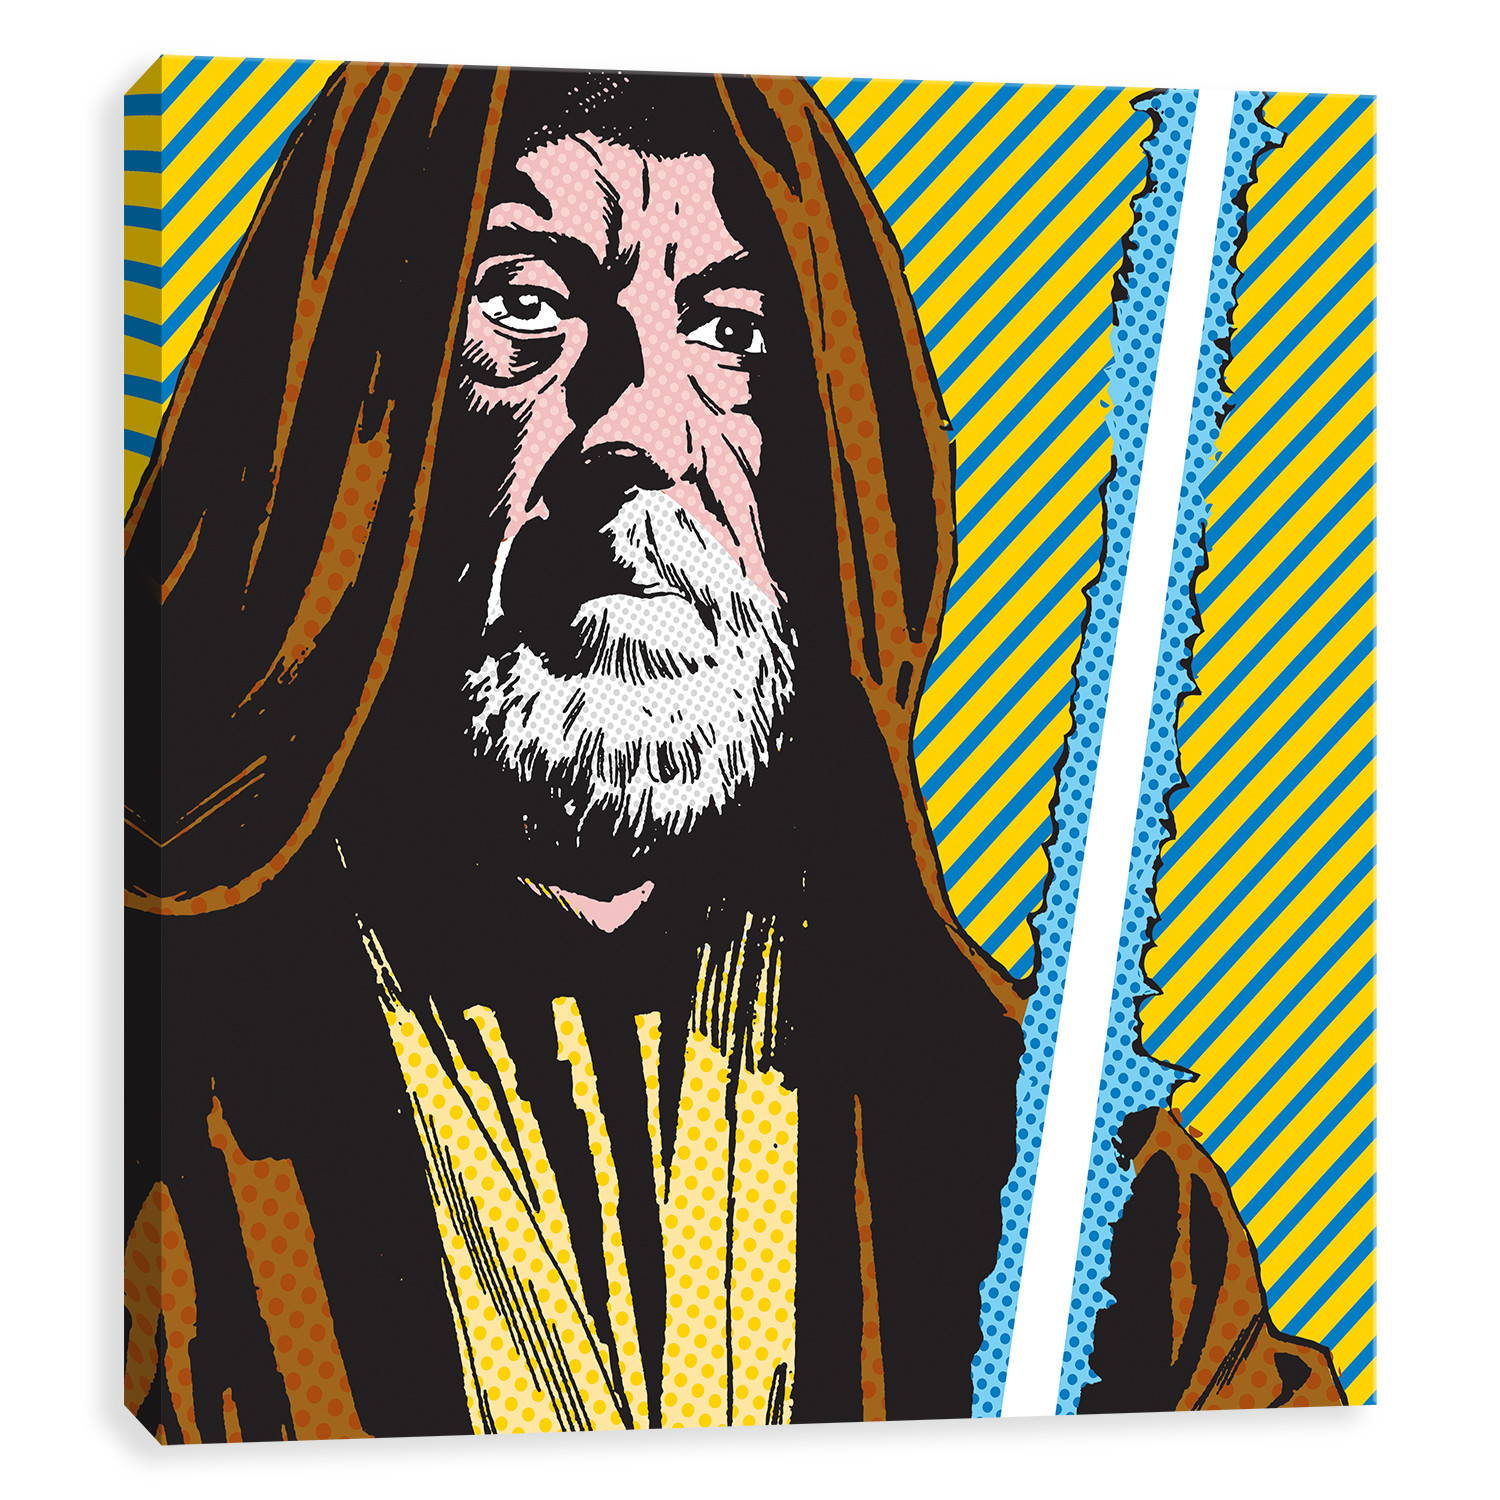 Star wars pop art obi wan one with the force 16